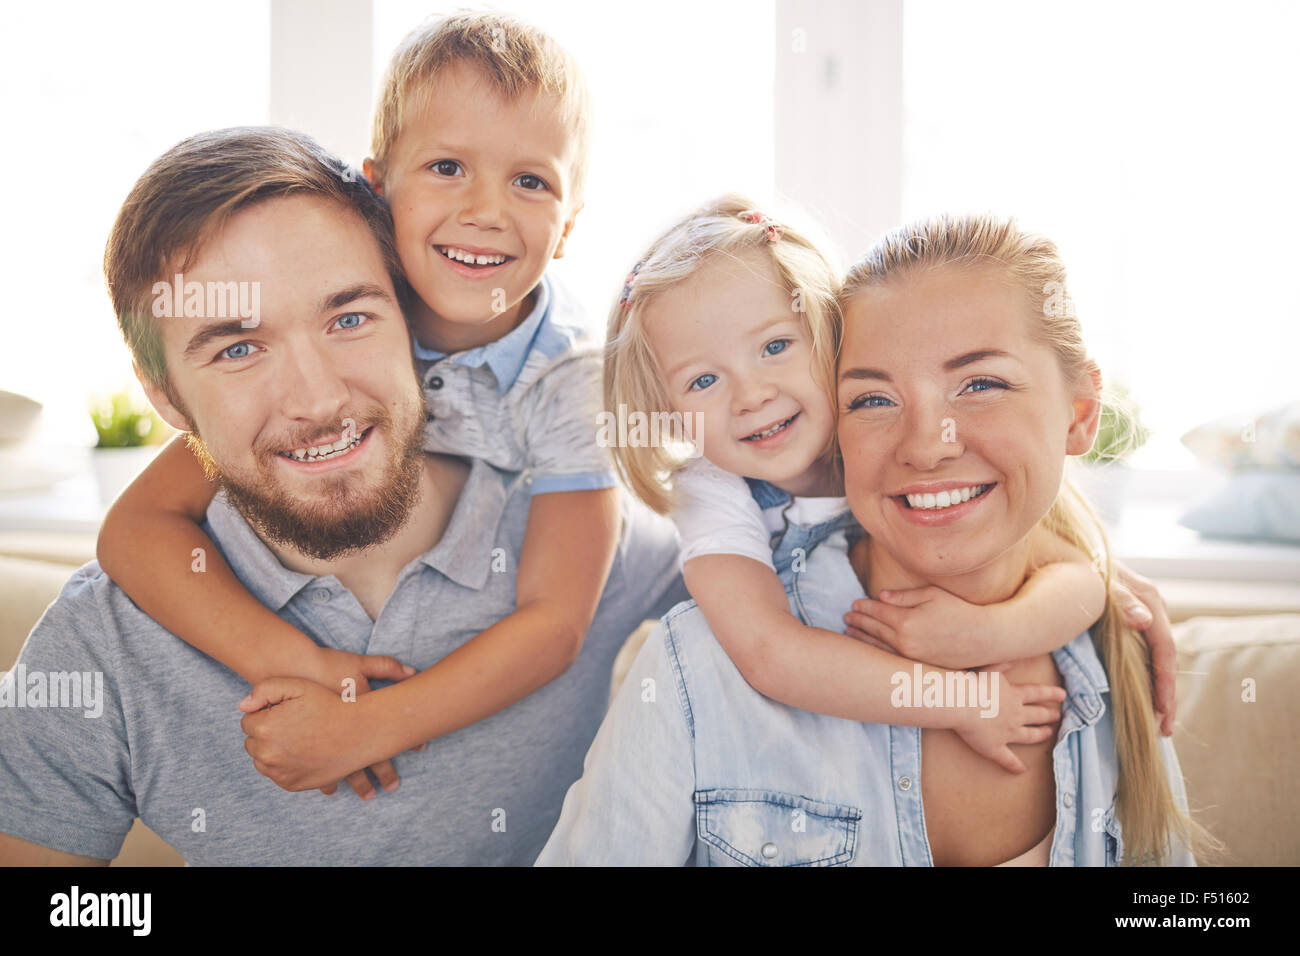 Happy kids embracing their cheerful parents - Stock Image